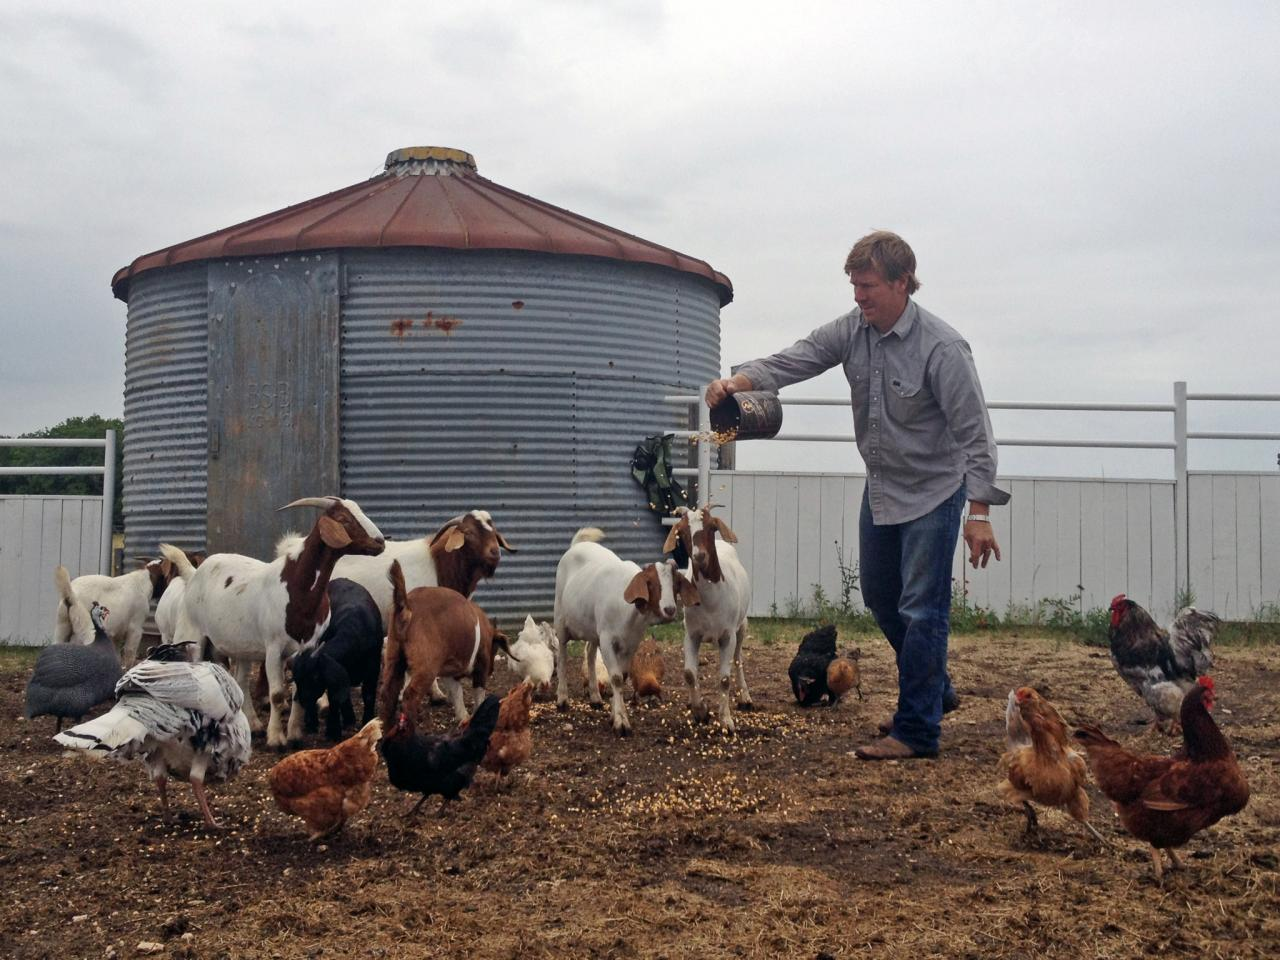 Chip Gaines feeds the livestock on his farm in a scene from Fixer Upper